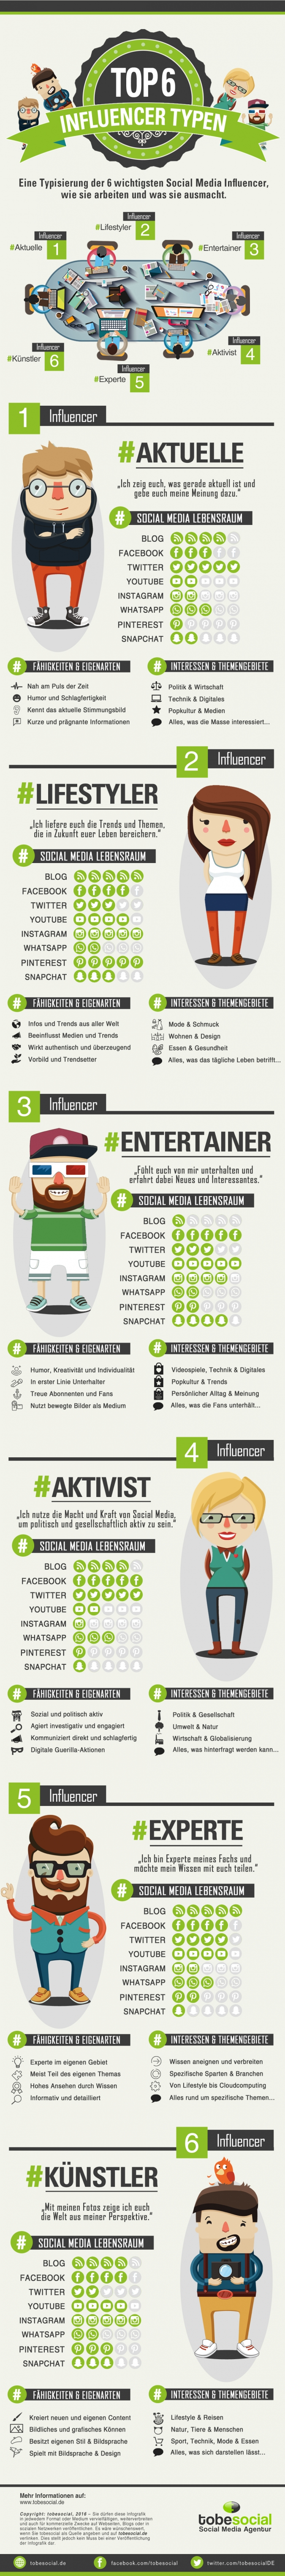 Top Social Media Influencer Typen Infografik: Agentur für Influencer Marketing und Empfehlungsmarketing via Social Media, auf Facebook, YouTube, Instagram, SnapChat, WhatsApp, Blogger Marketing, Blogger Relations. Social Media B2B und B2C, Agentur Word of Mouth Marketing